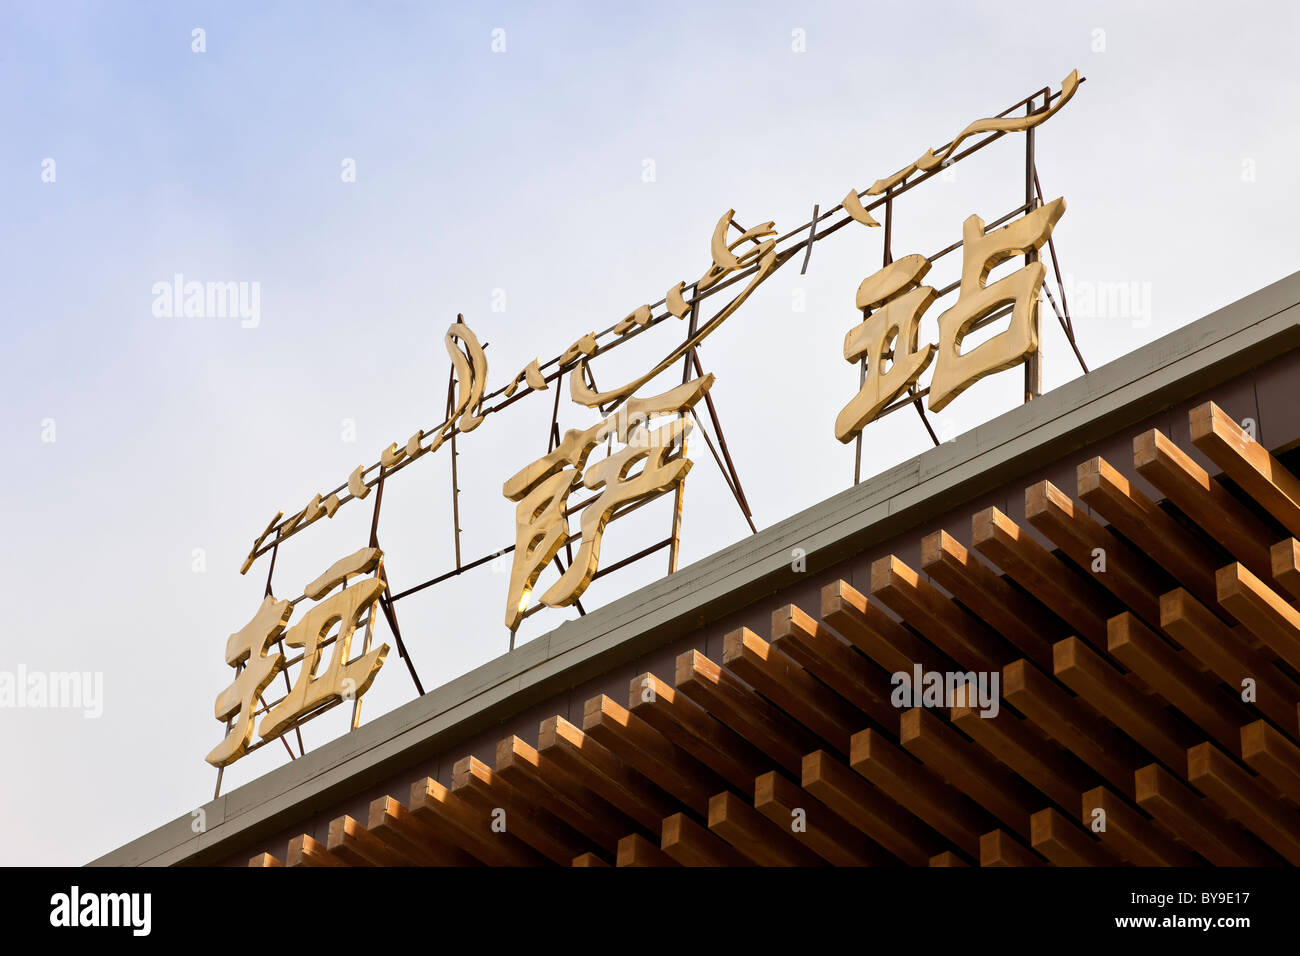 Sign above the entrance to the railway station Lhasa Tibet. JMH4613 - Stock Image